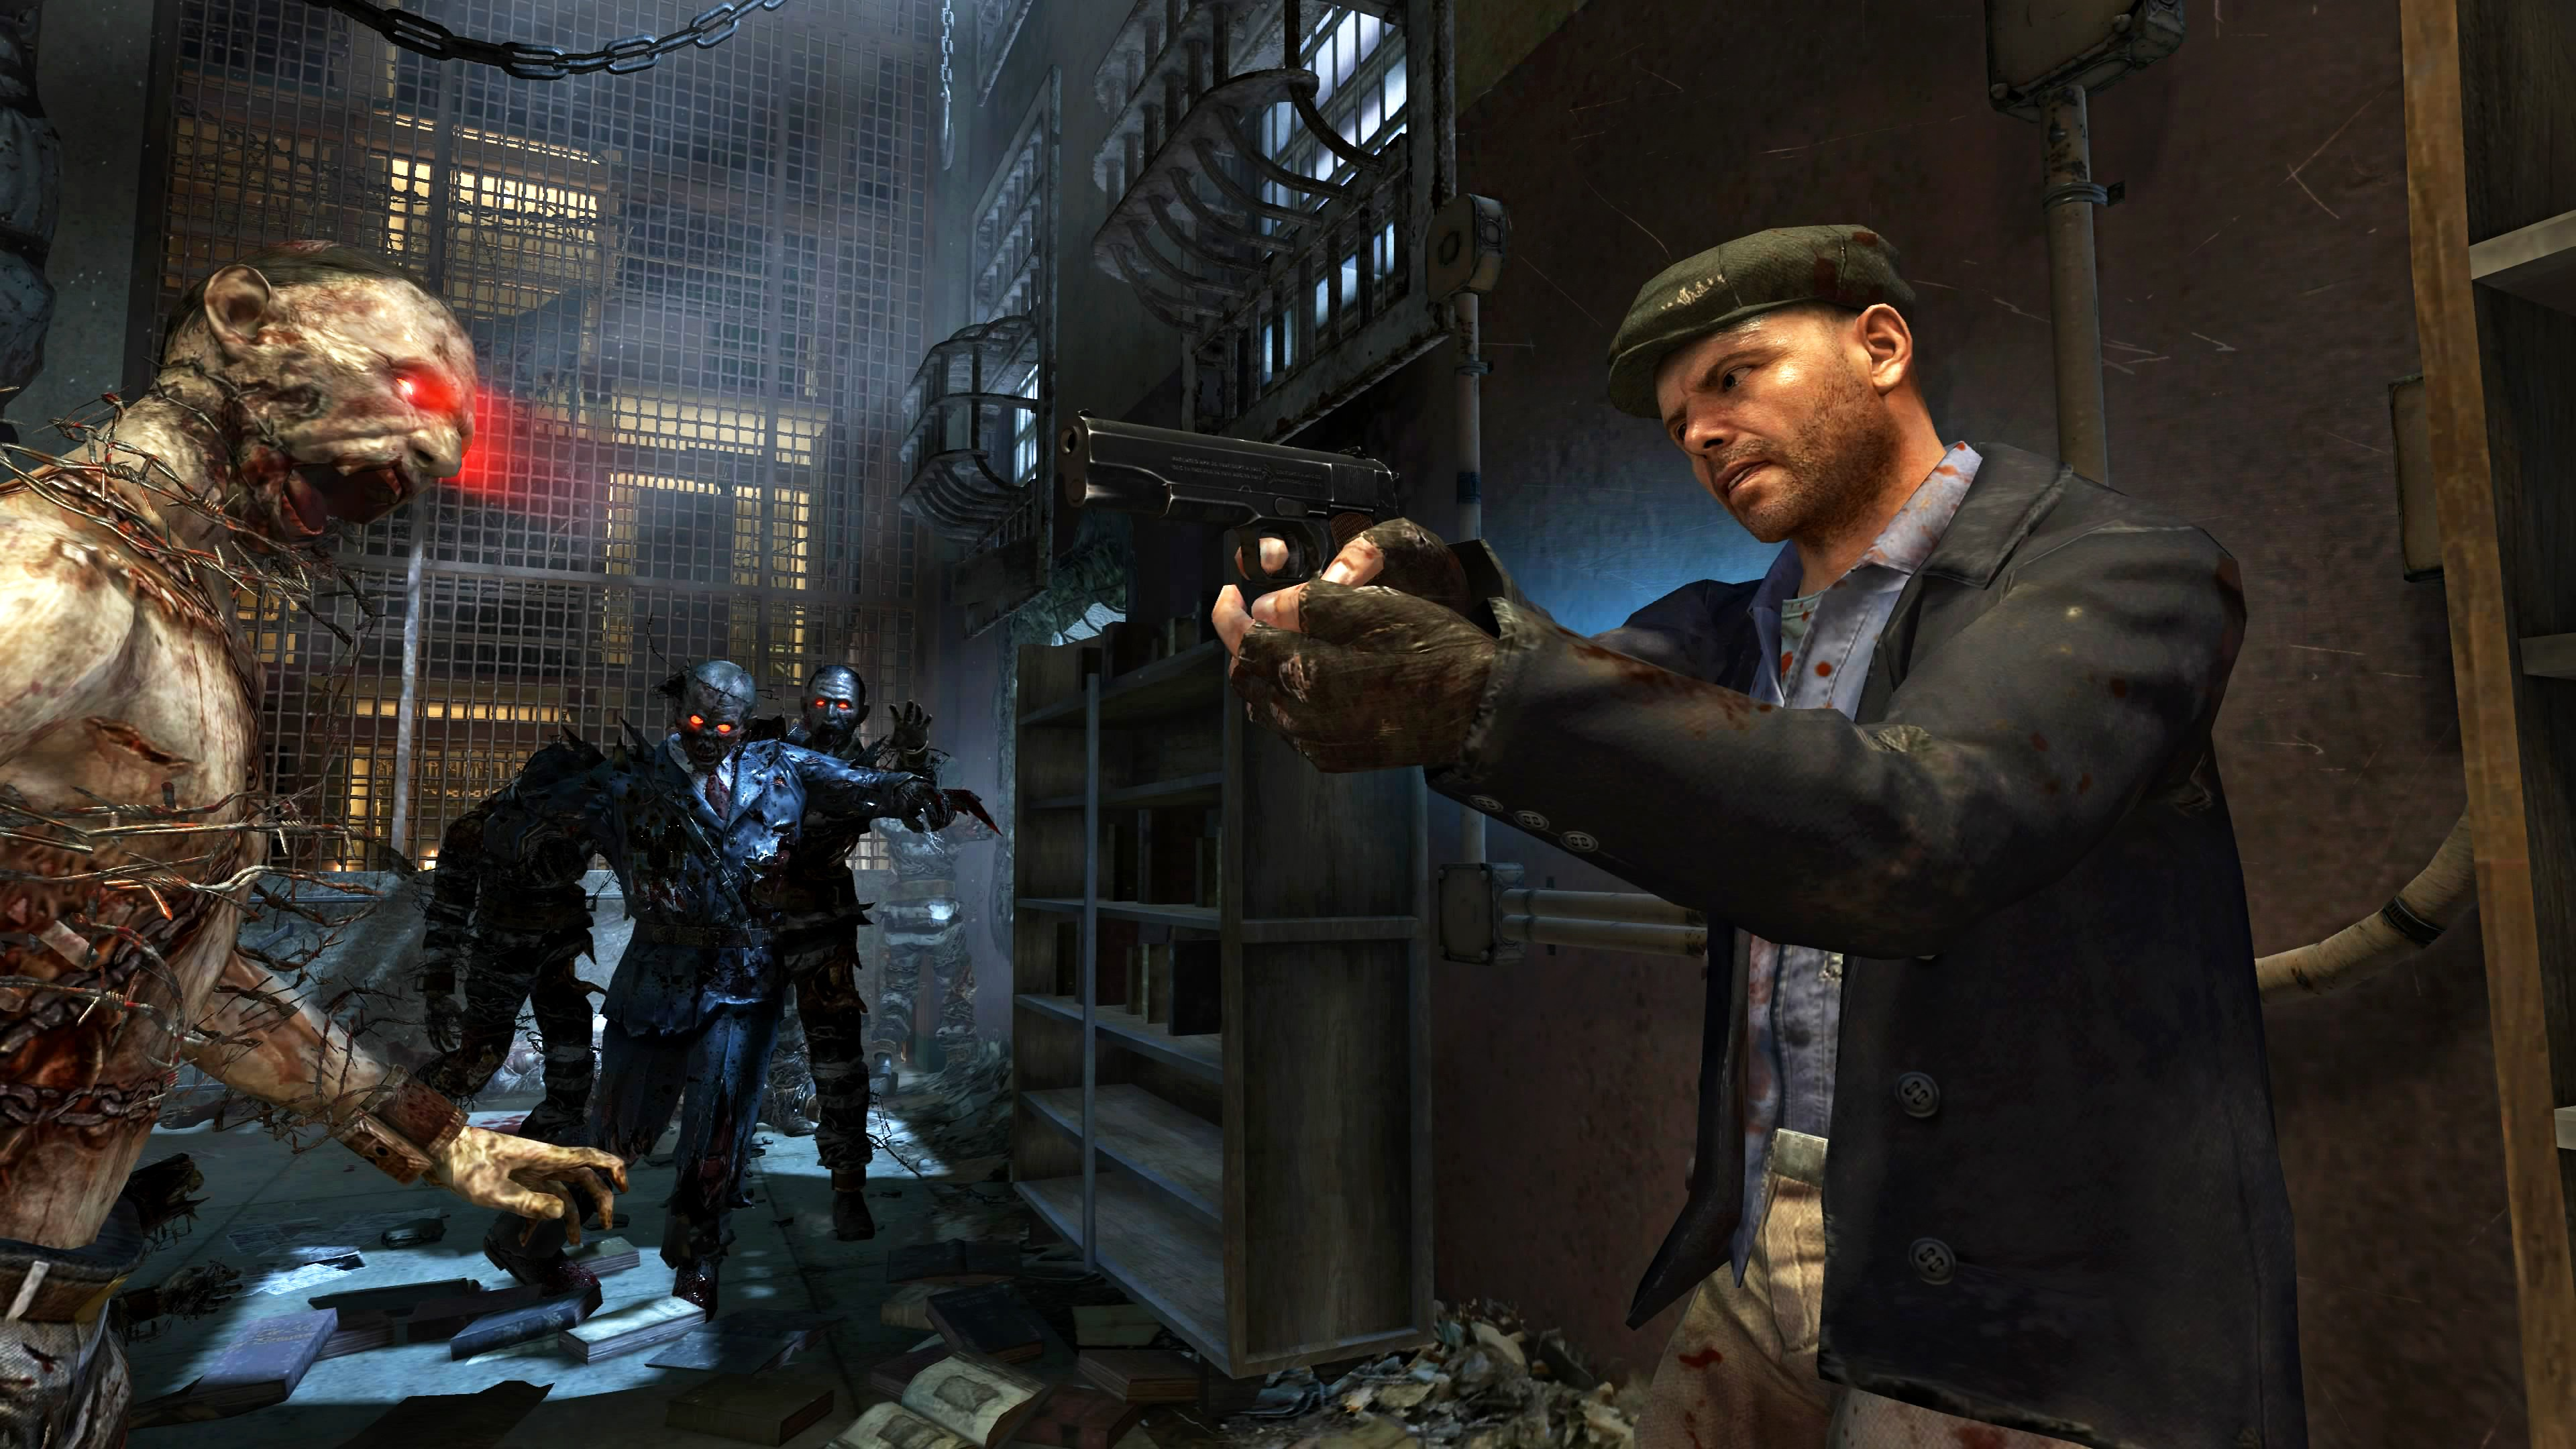 Black Ops Ii Zombies Map Mob Of The Dead Finally Out On The Pc